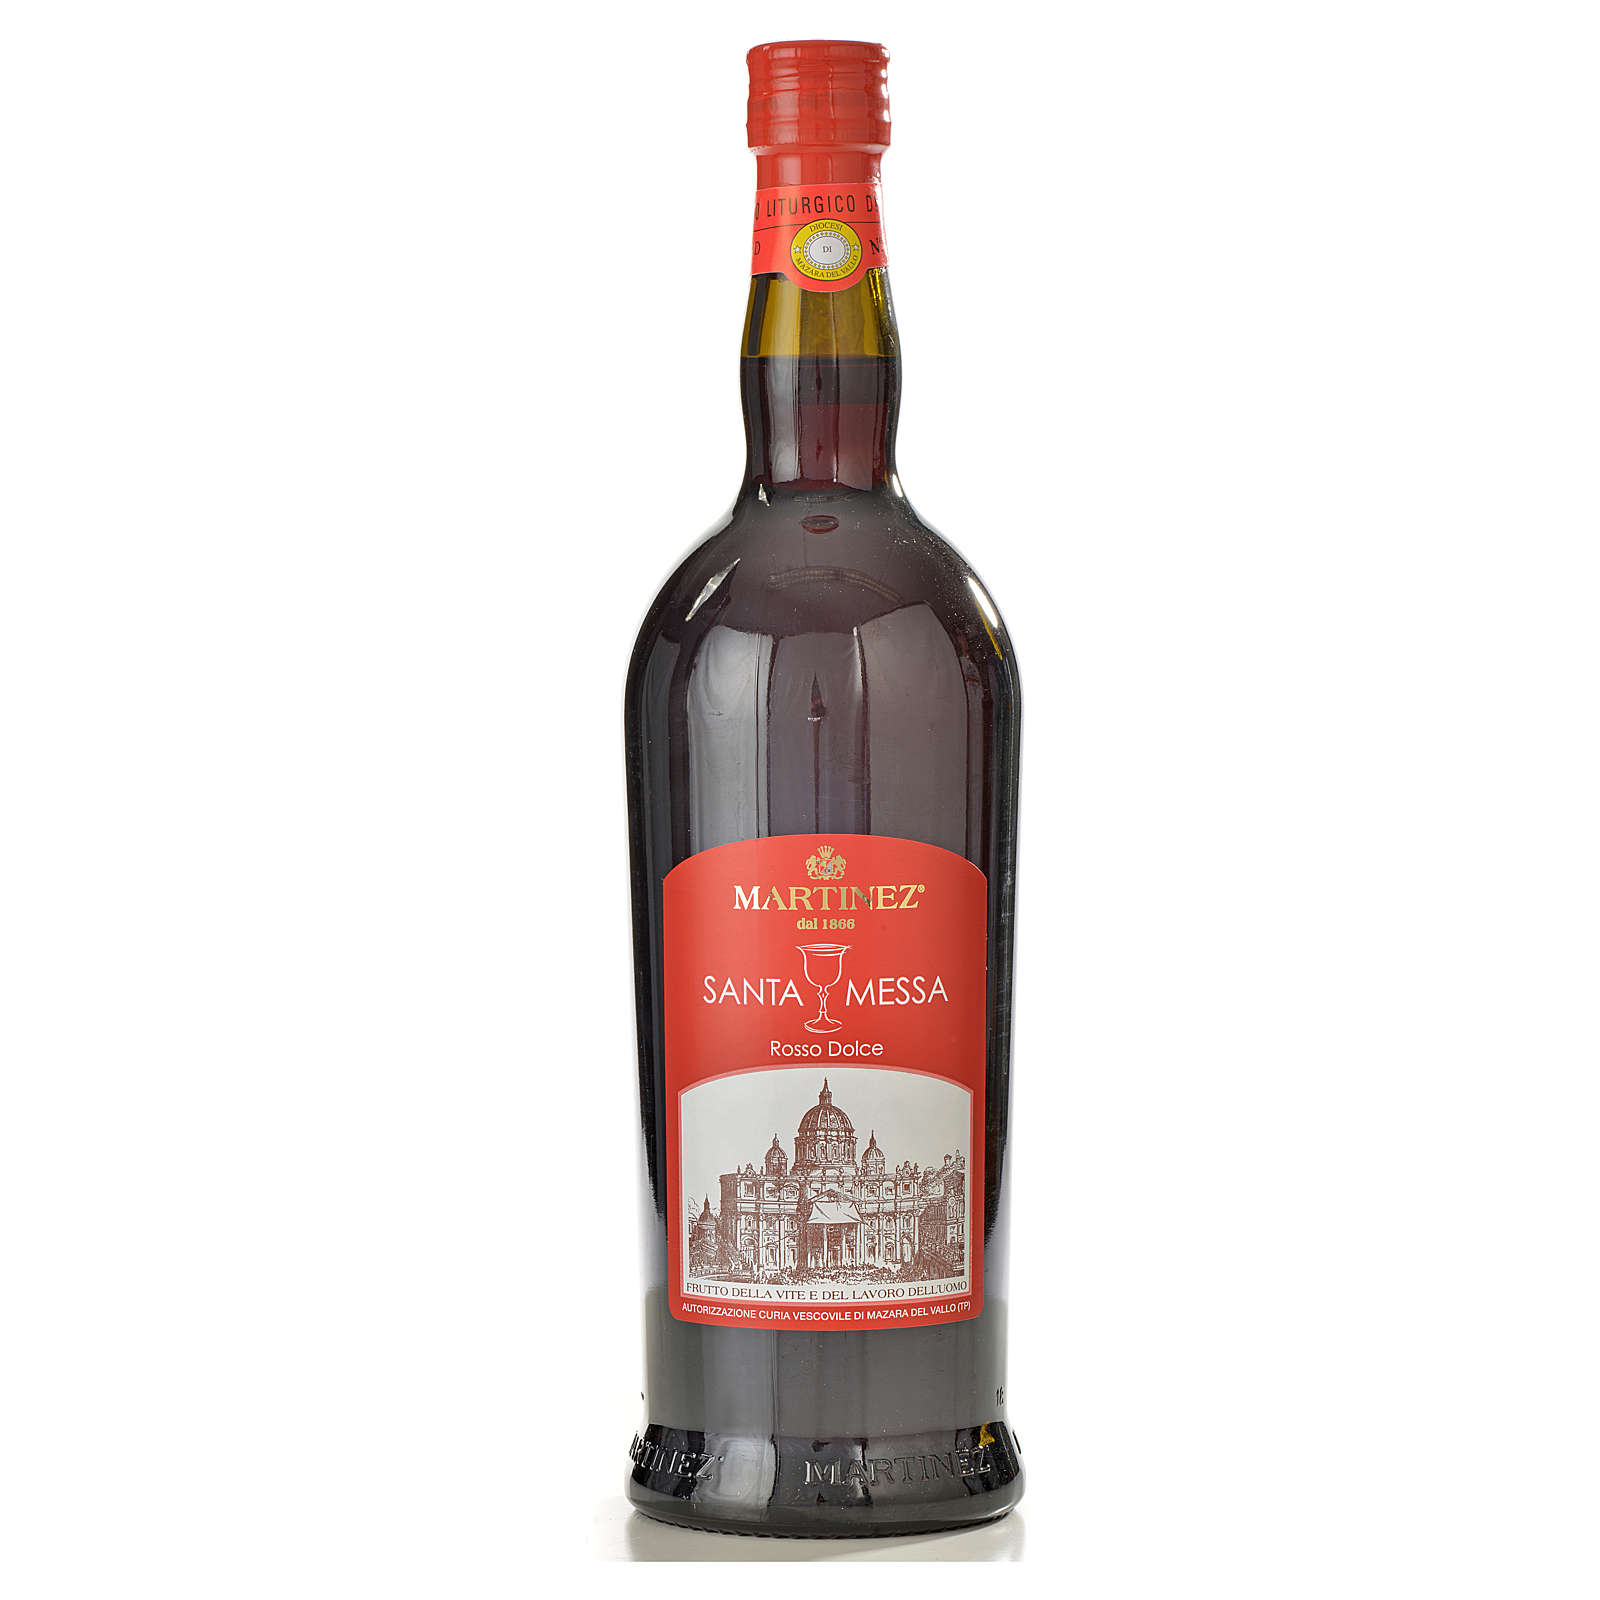 Mass wine sweet red - Martinez 3